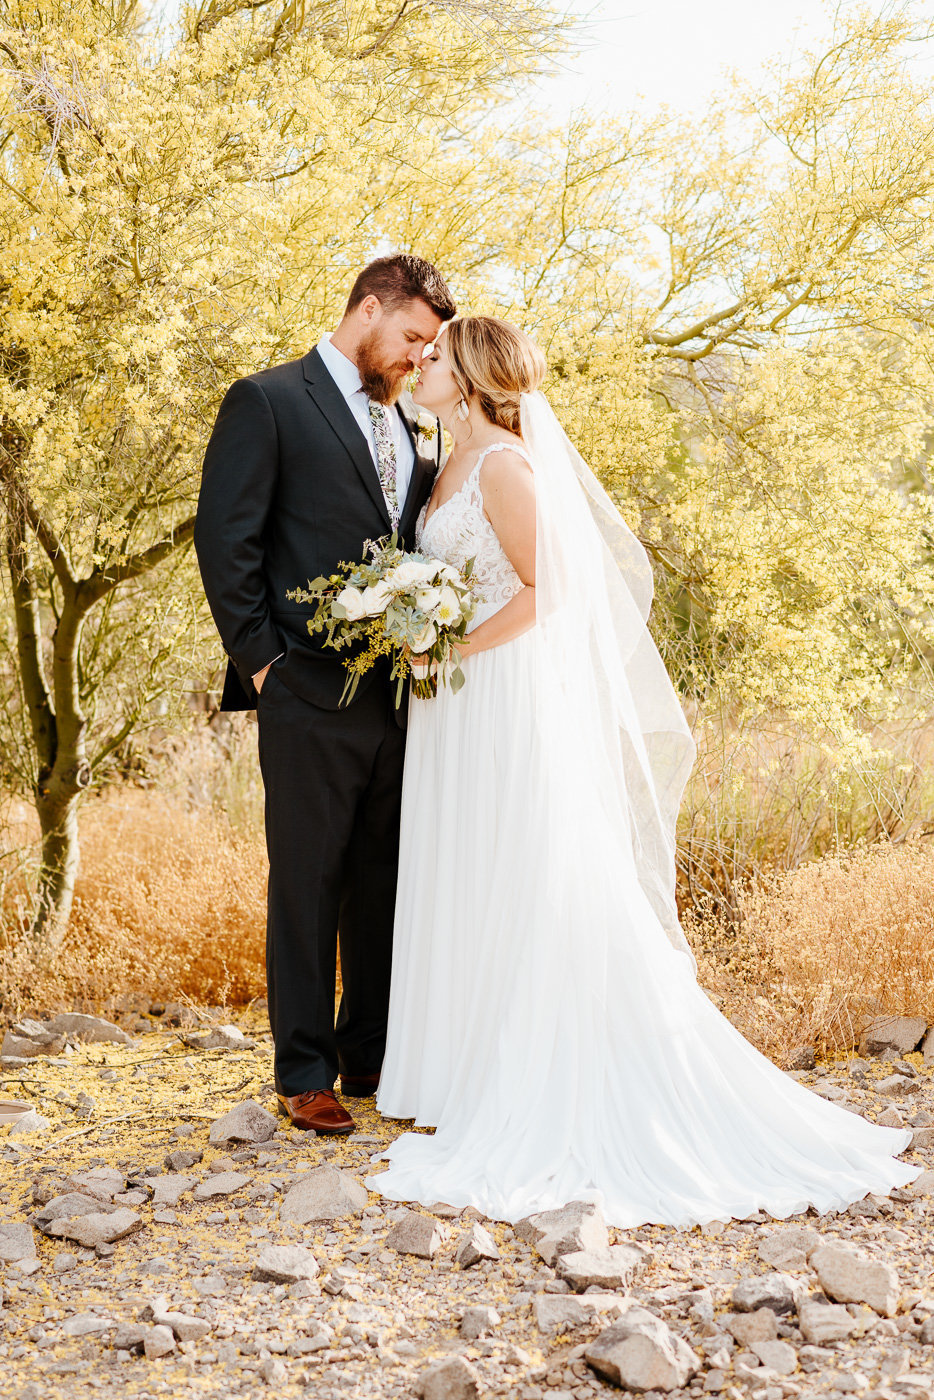 Intimate Arizona Wedding - Parker Micheaels Photography-54